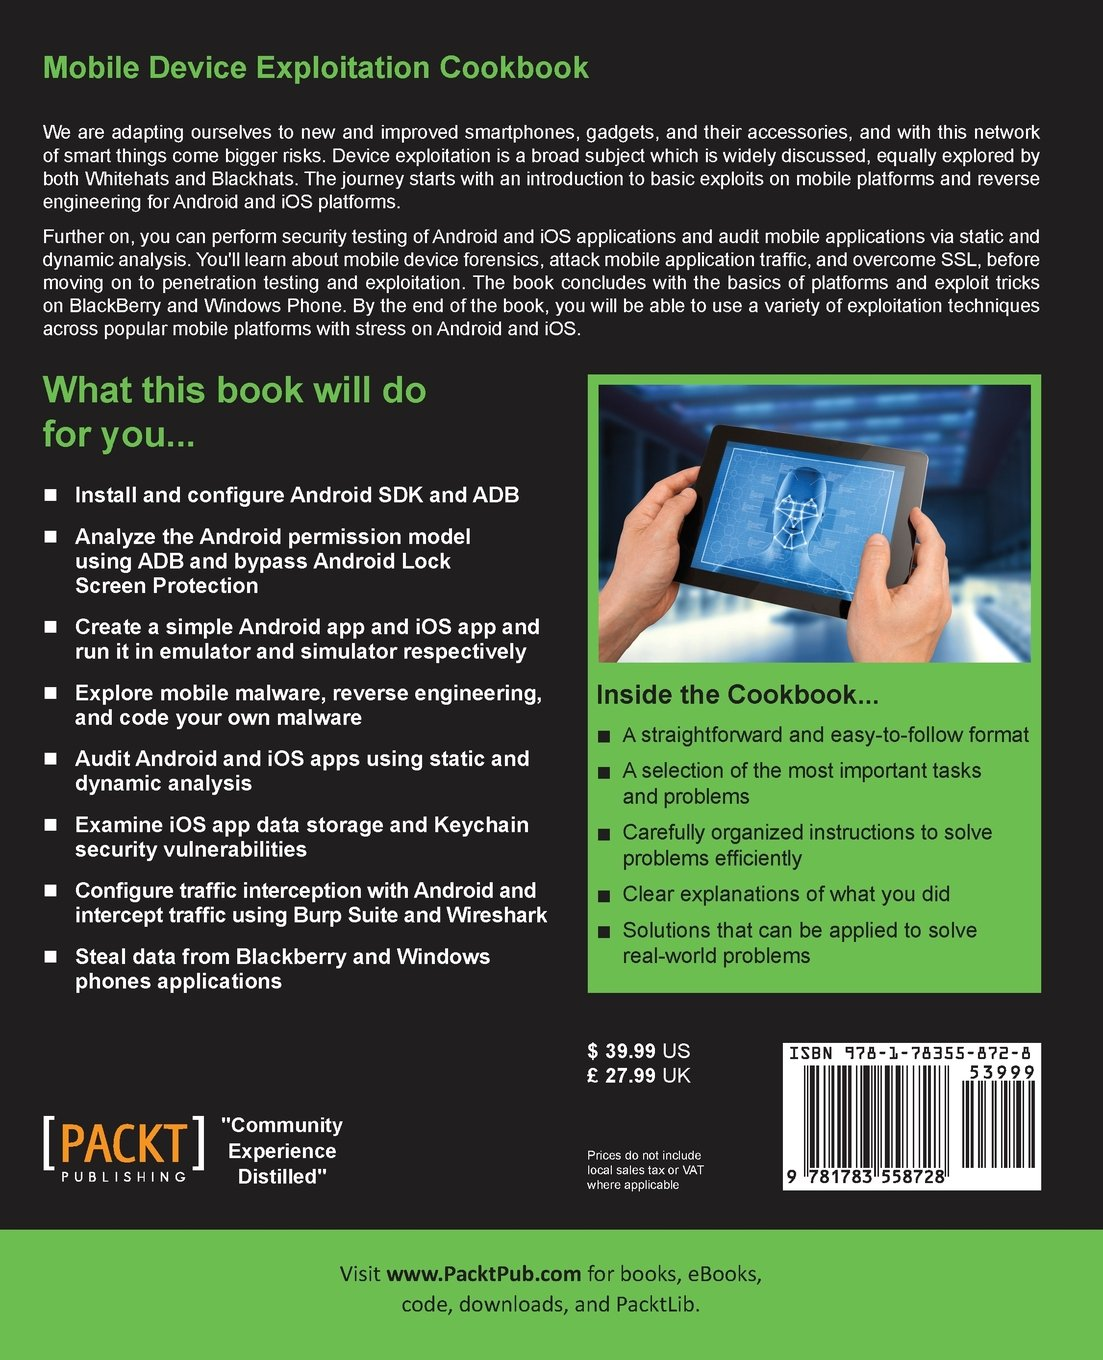 Buy Mobile Device Exploitation Cookbook Book Online at Low